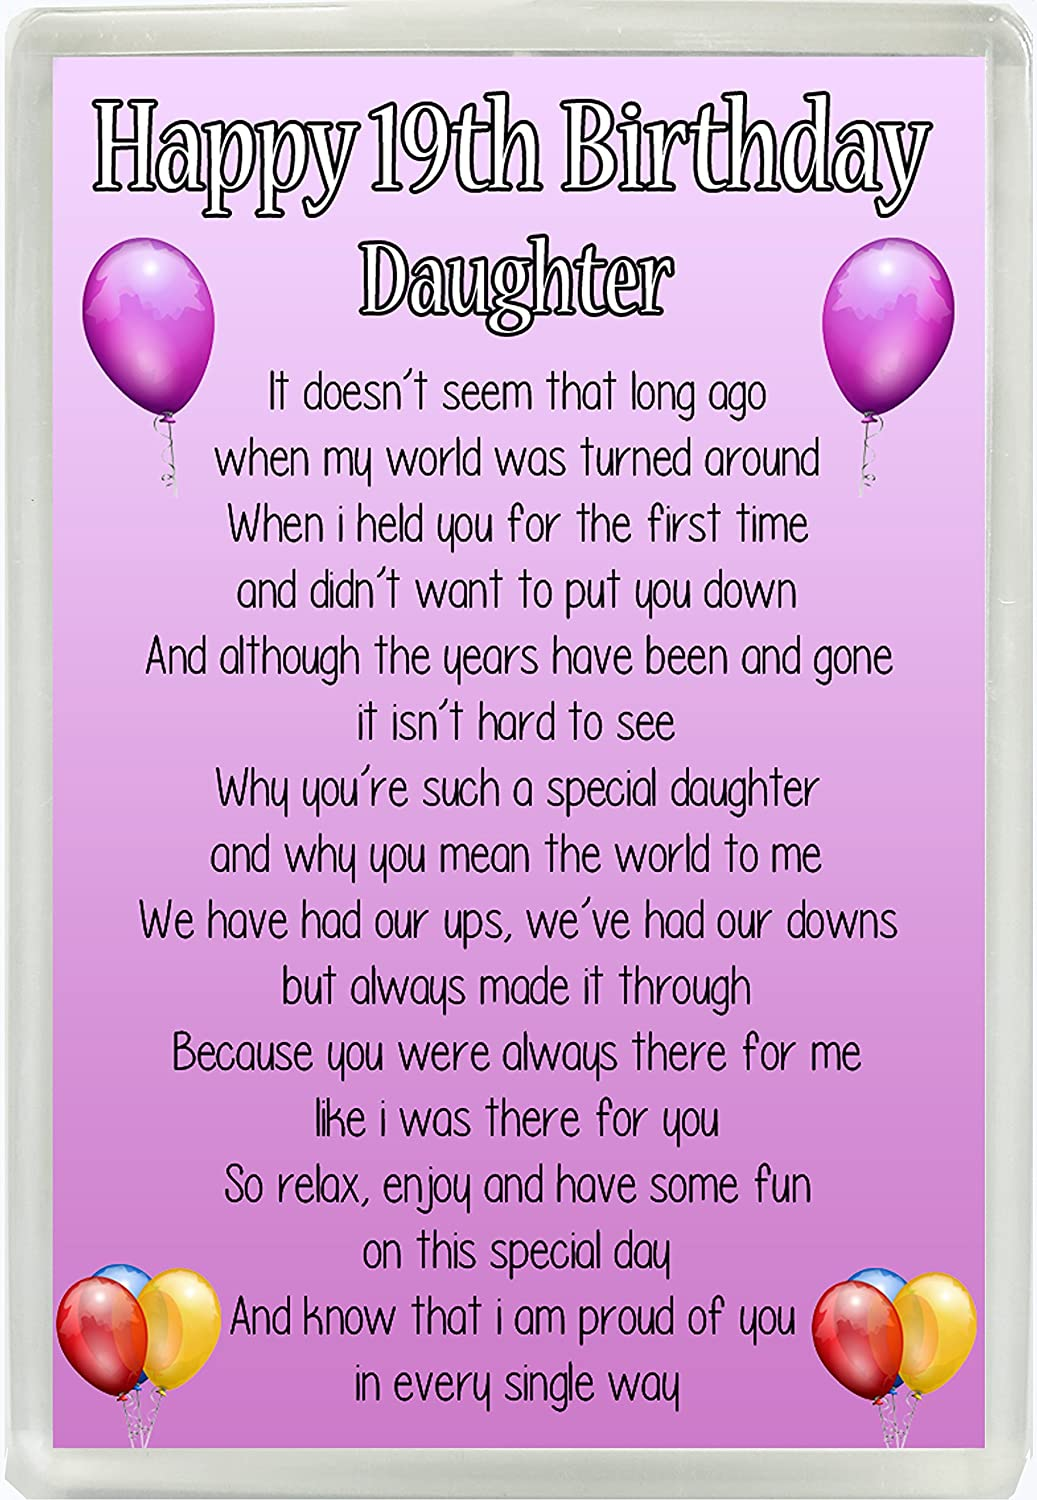 Happy 19th Birthday Daughter Poem Jumbo Fridge Magnet Ideal Gift M90 Amazoncouk Kitchen Home